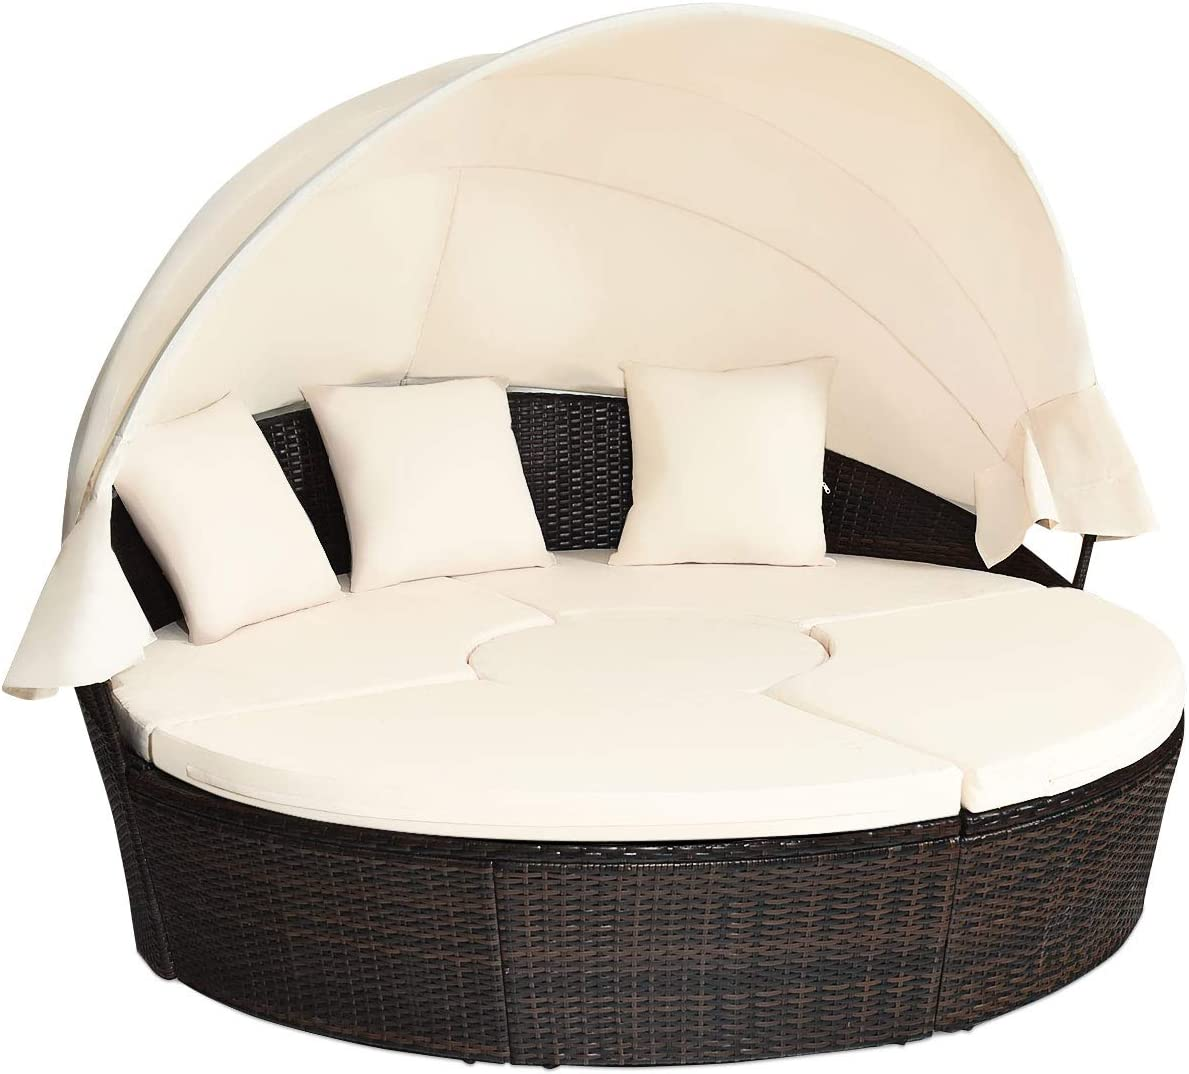 Max 84% OFF Tangkula Patio Round Daybed Low price with Canopy Outdoor Wic Retractable